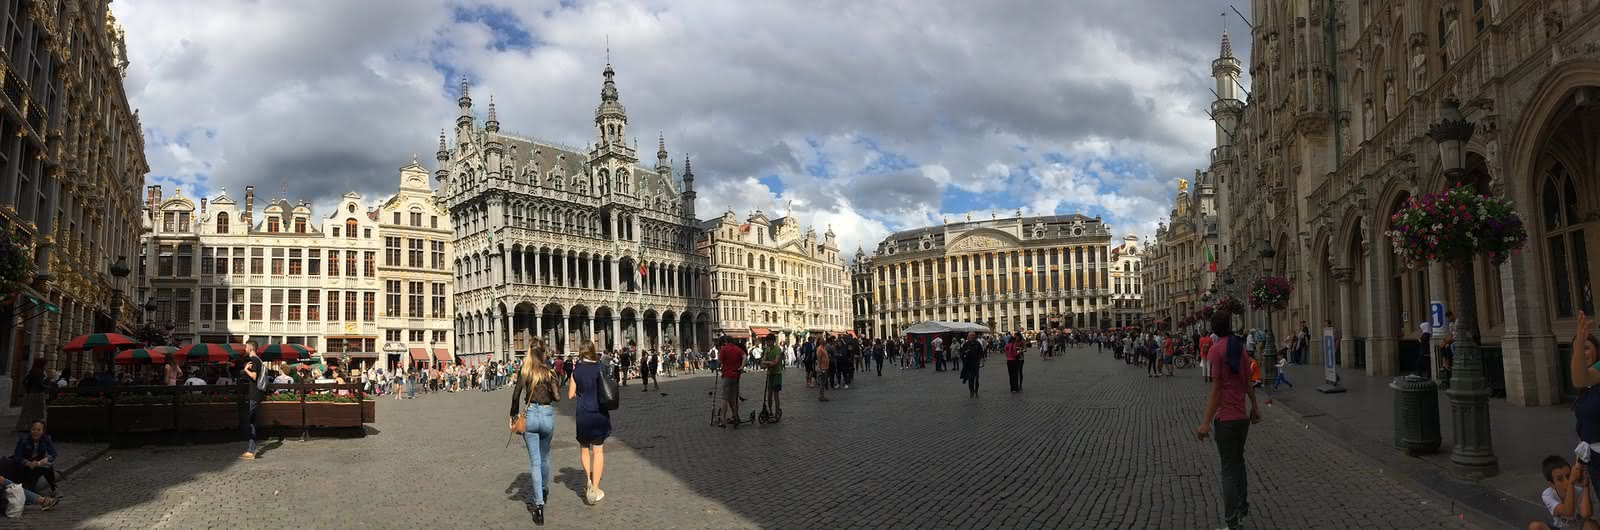 brussels city header